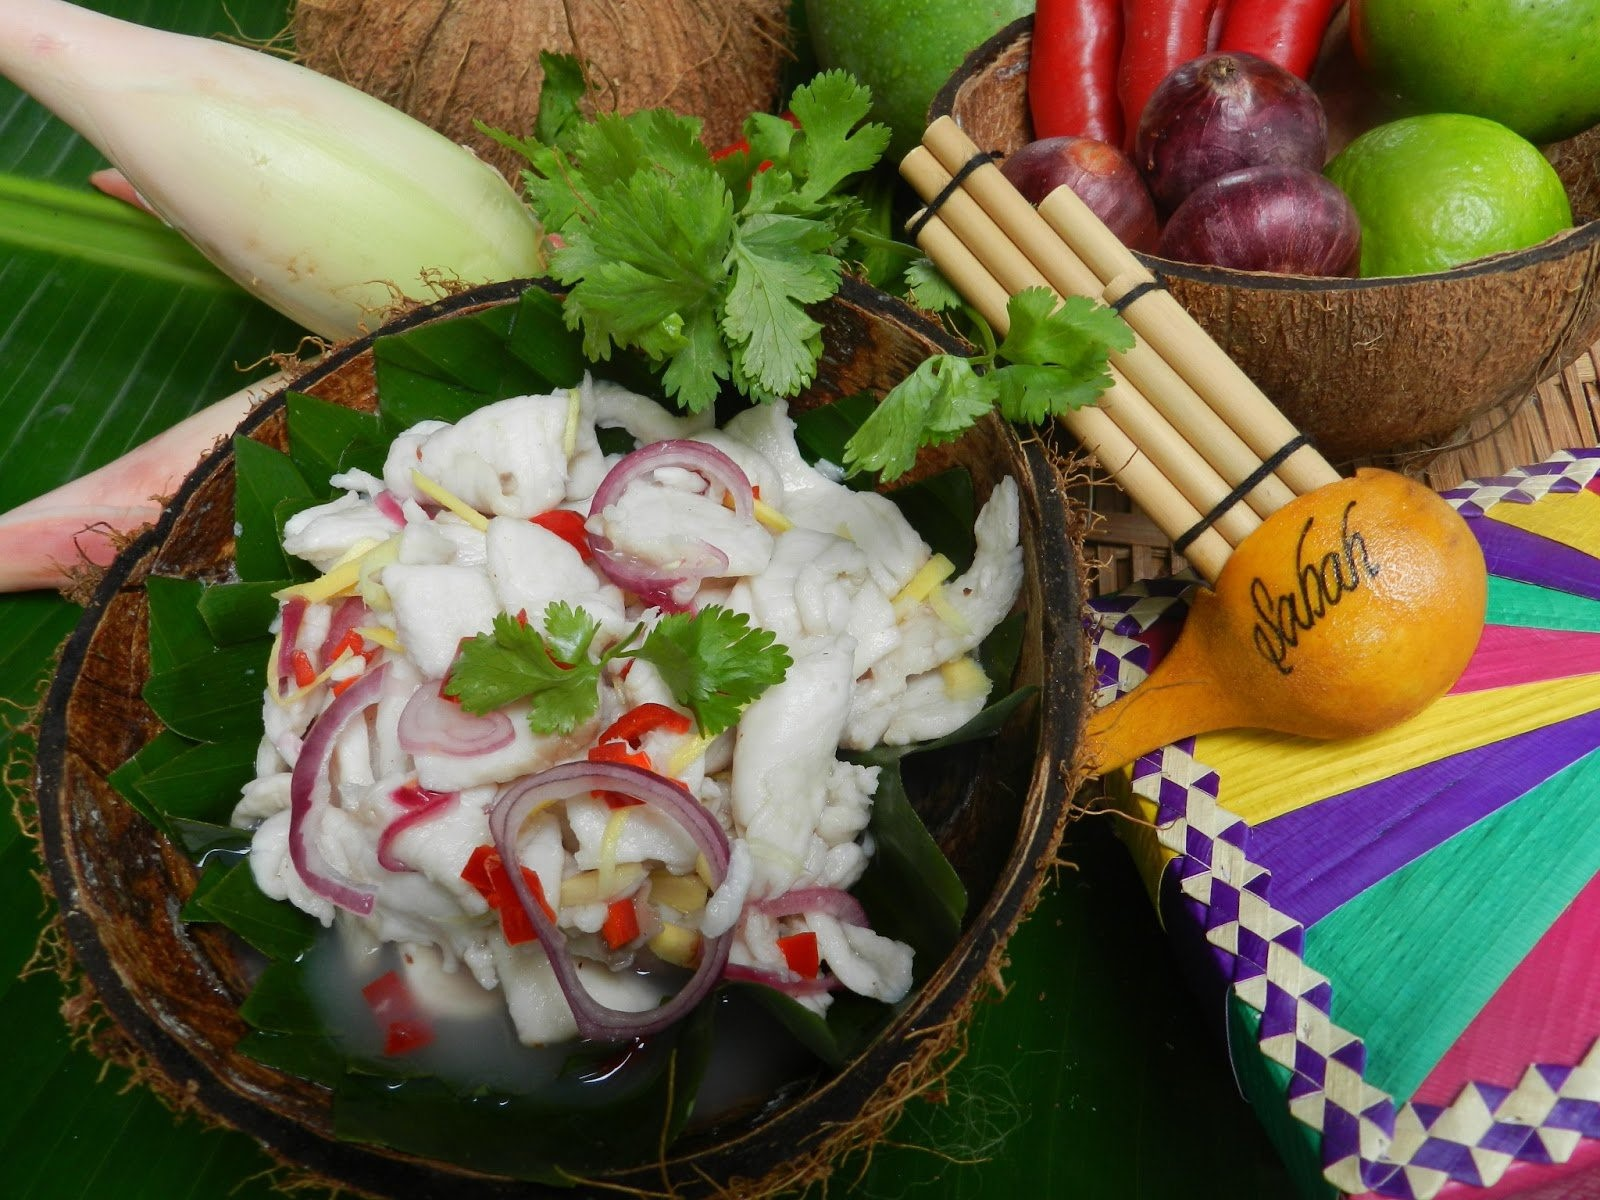 'Hinava', a famous Kadazan-Dusun salad that is prepared with fresh raw mackerel fish, onions, shavings of ginger and chili with a splash of lime juice